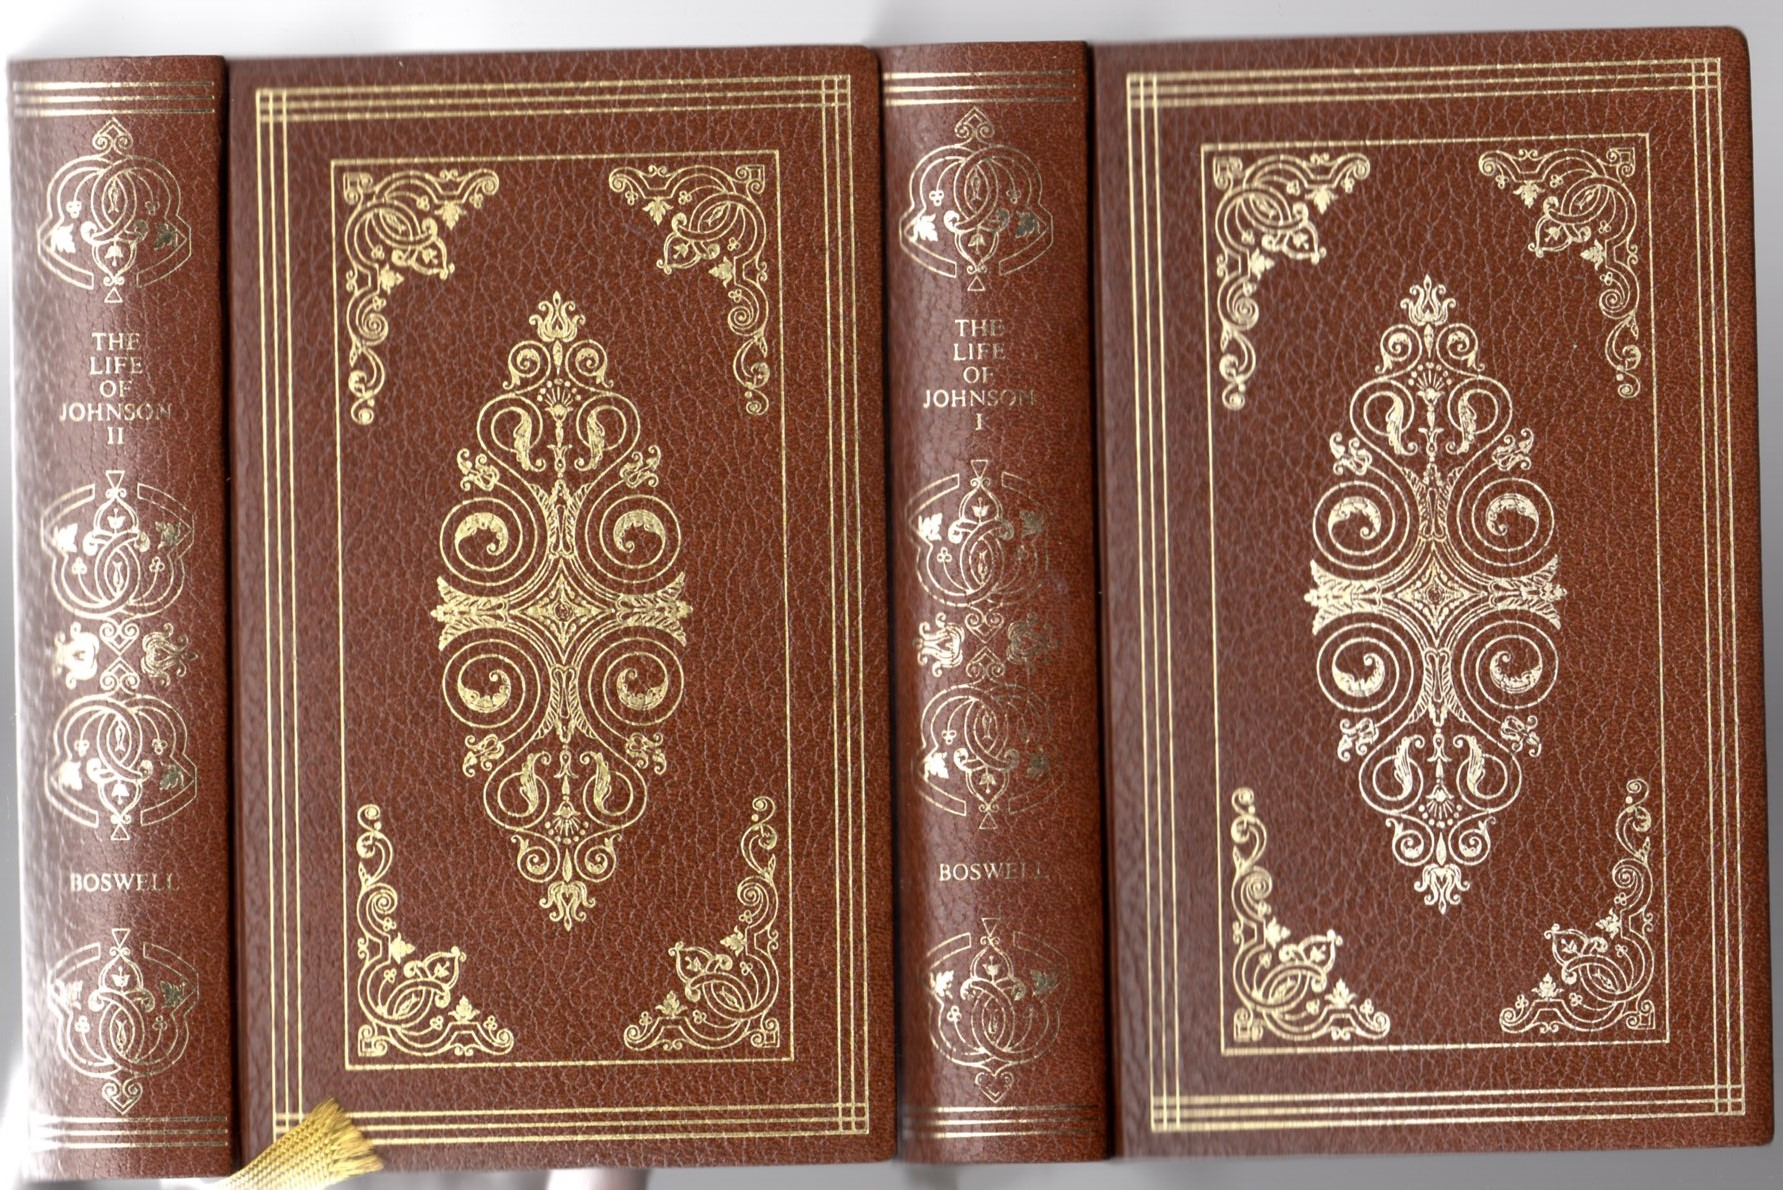 Image for Boswell's Life of Johnson - 2 Volumes